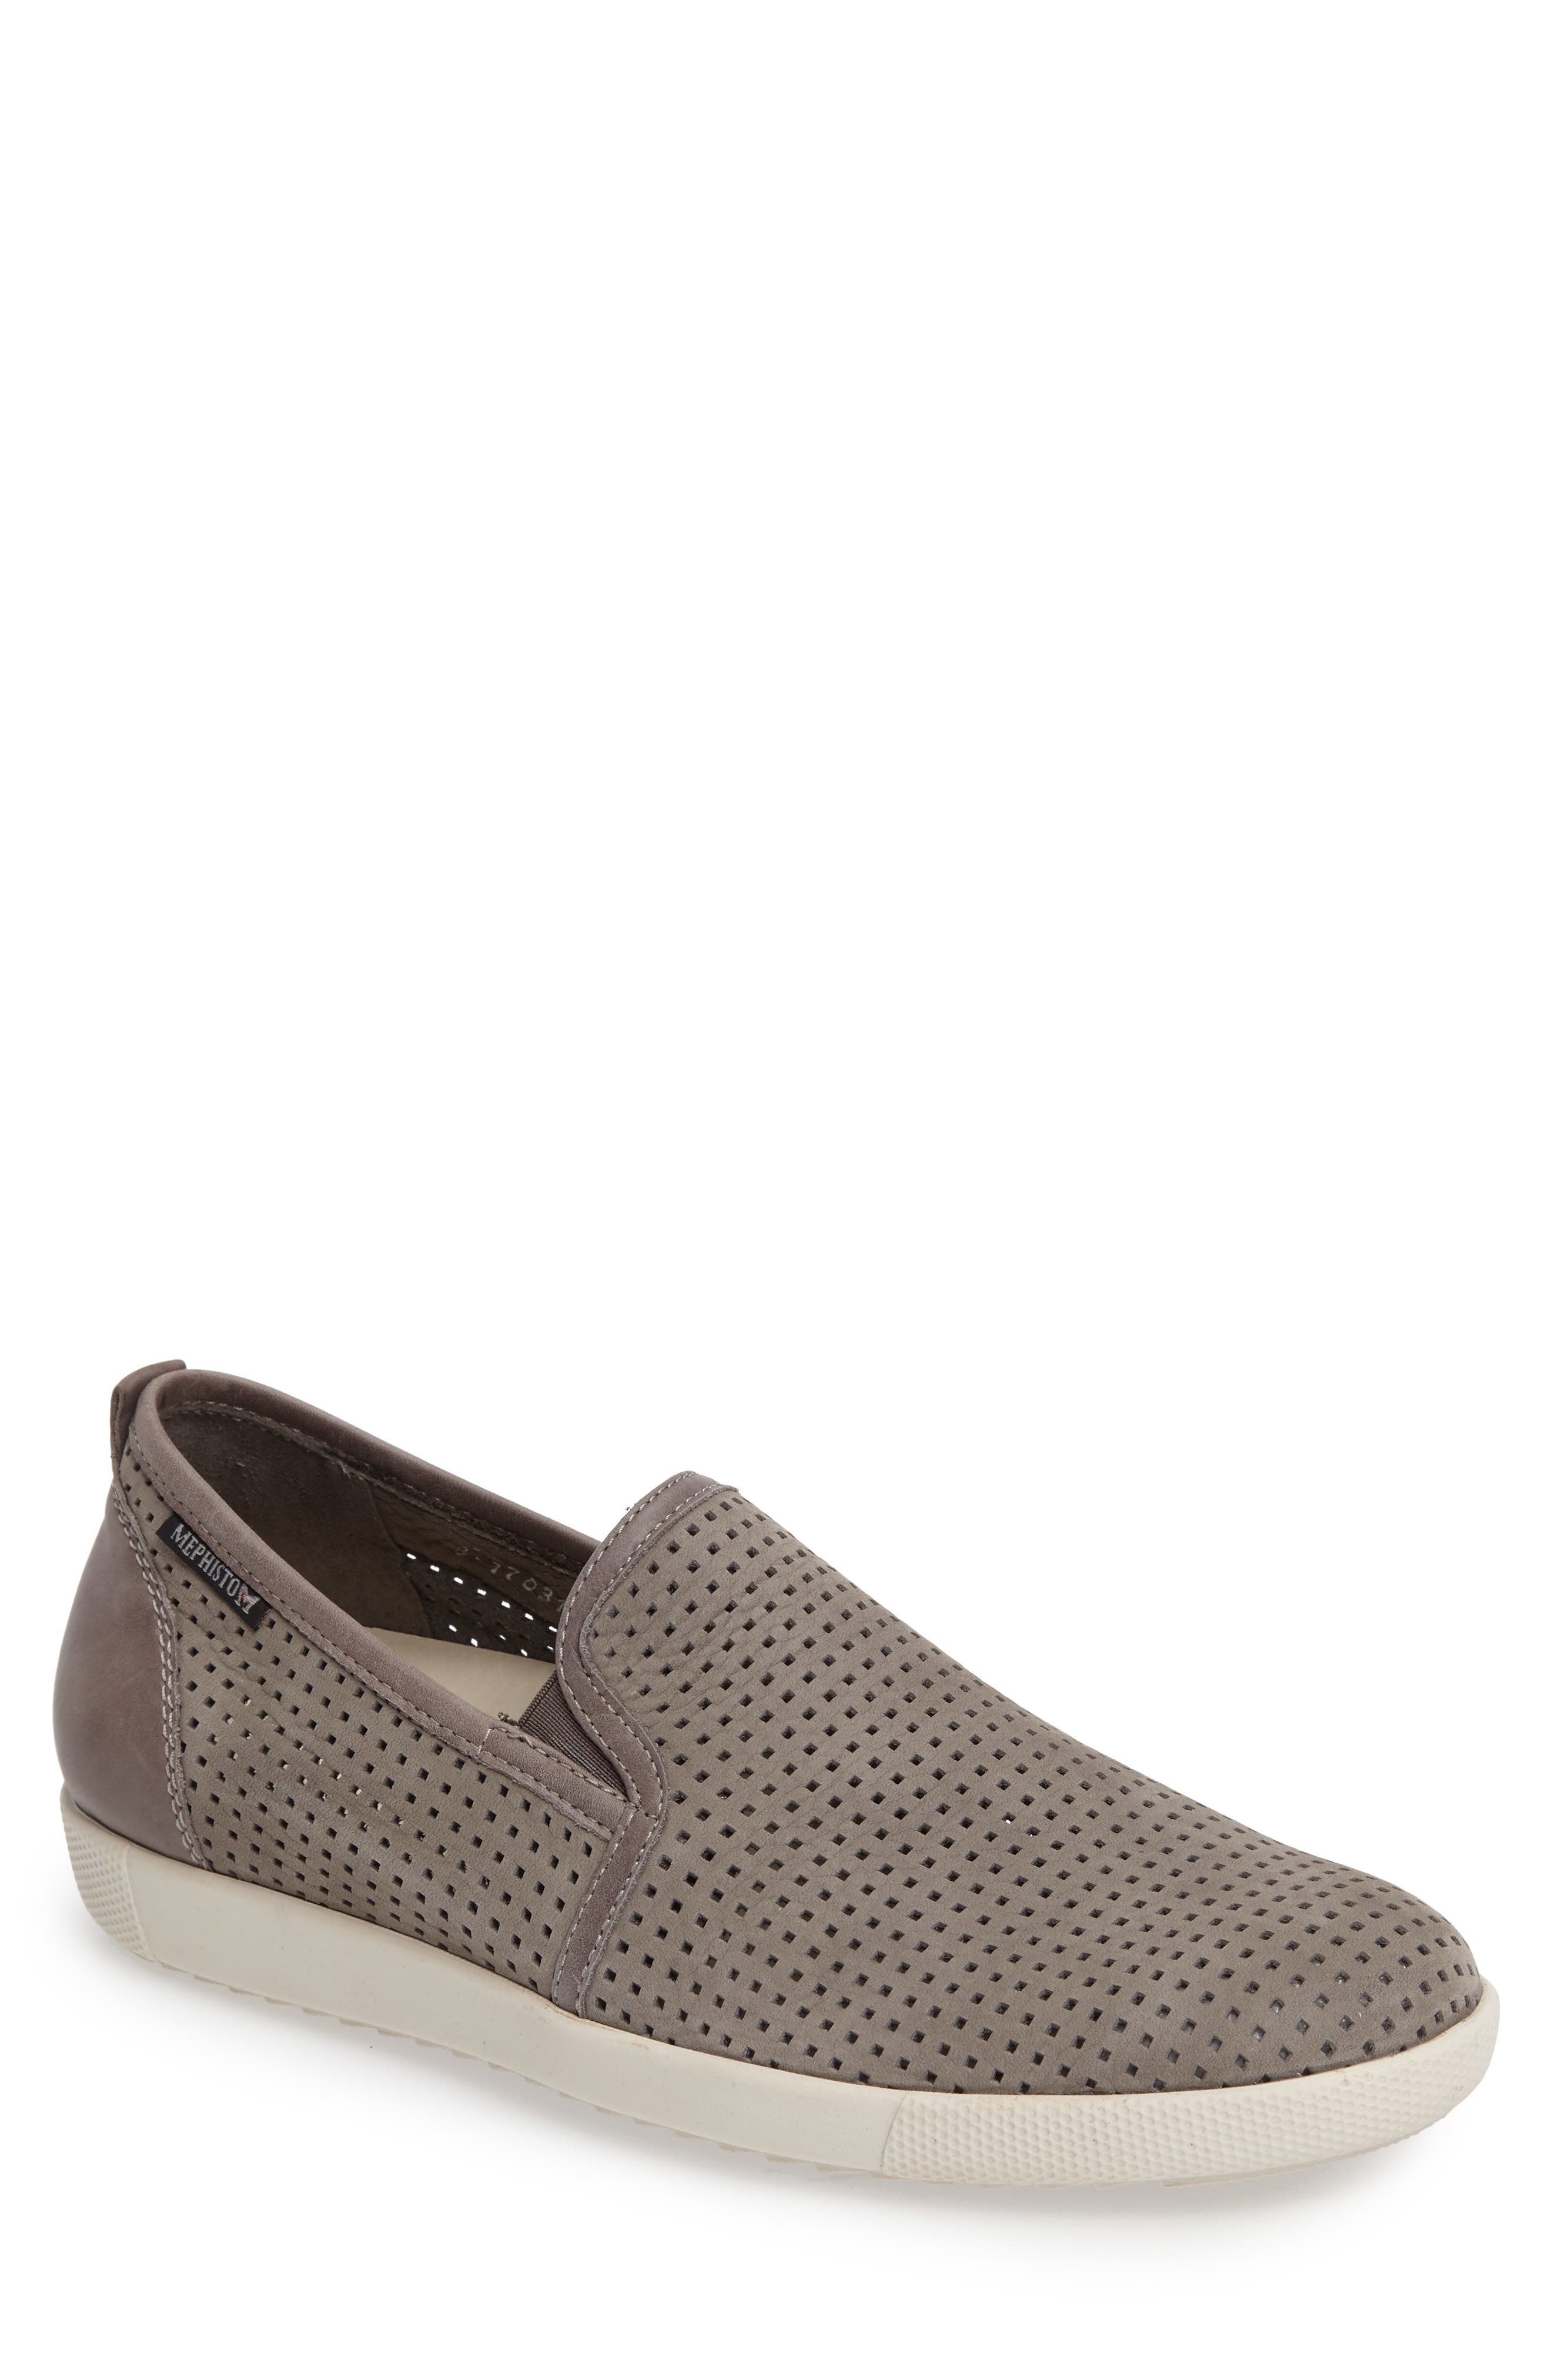 'Ulrich' Perforated Leather Slip-On,                             Main thumbnail 1, color,                             Light Grey Sportbuck